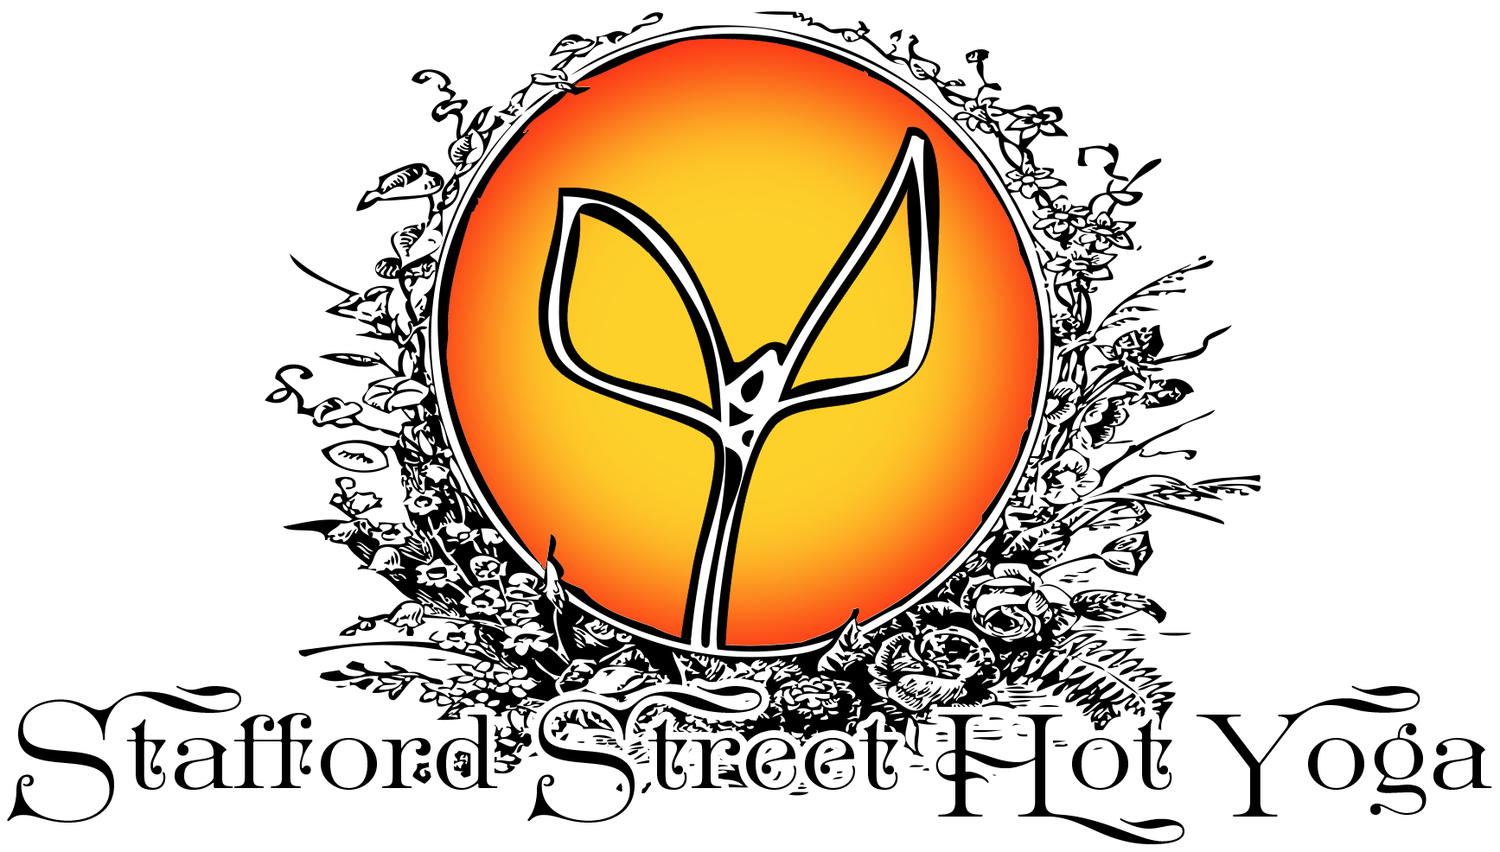 Stafford Street Hot Yoga Winnipeg